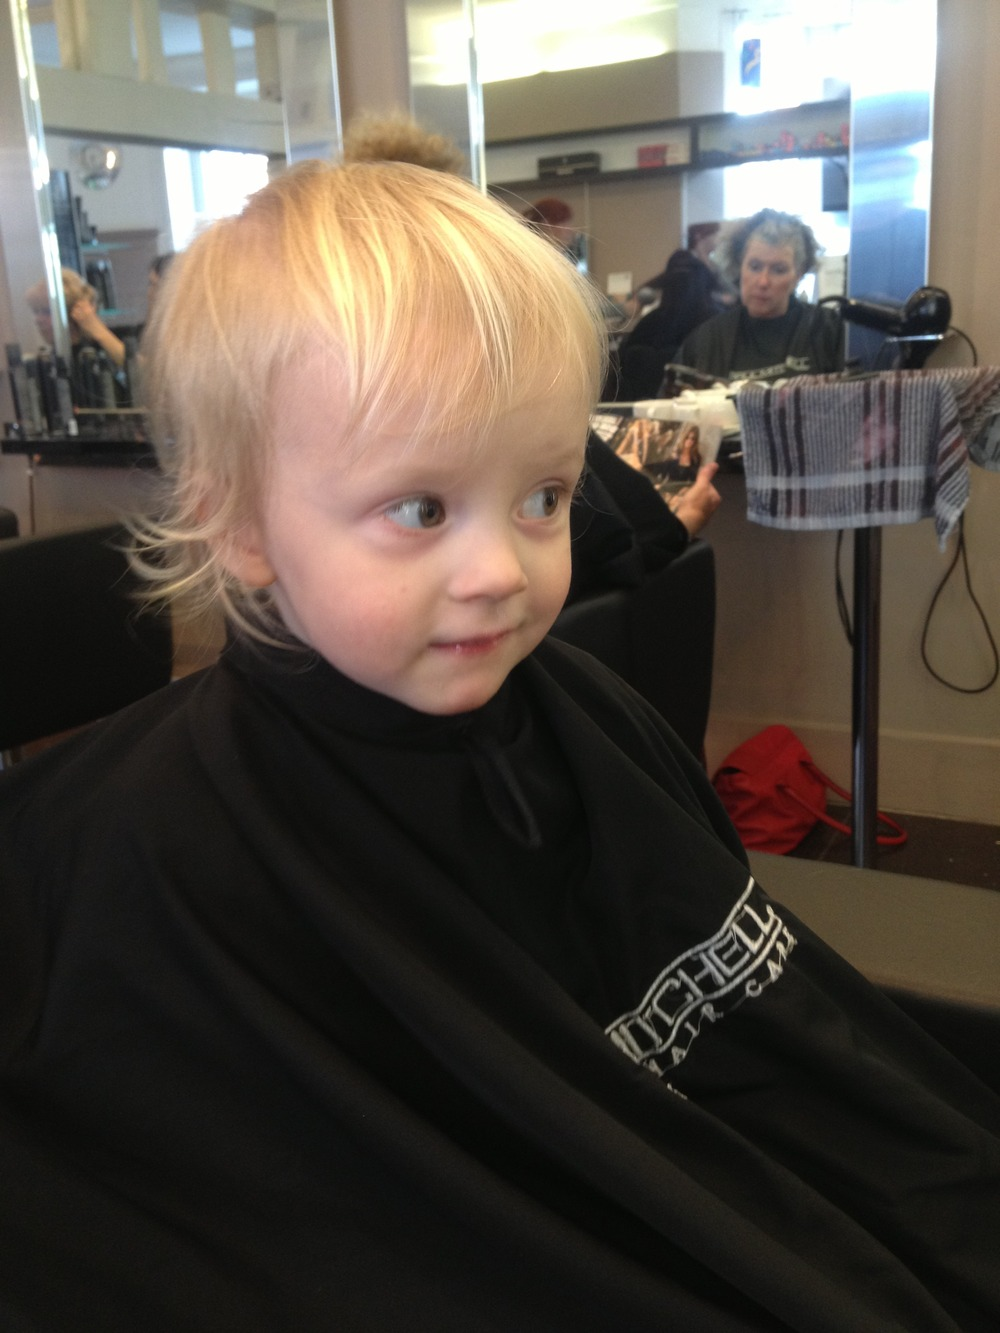 Her first hair cut!